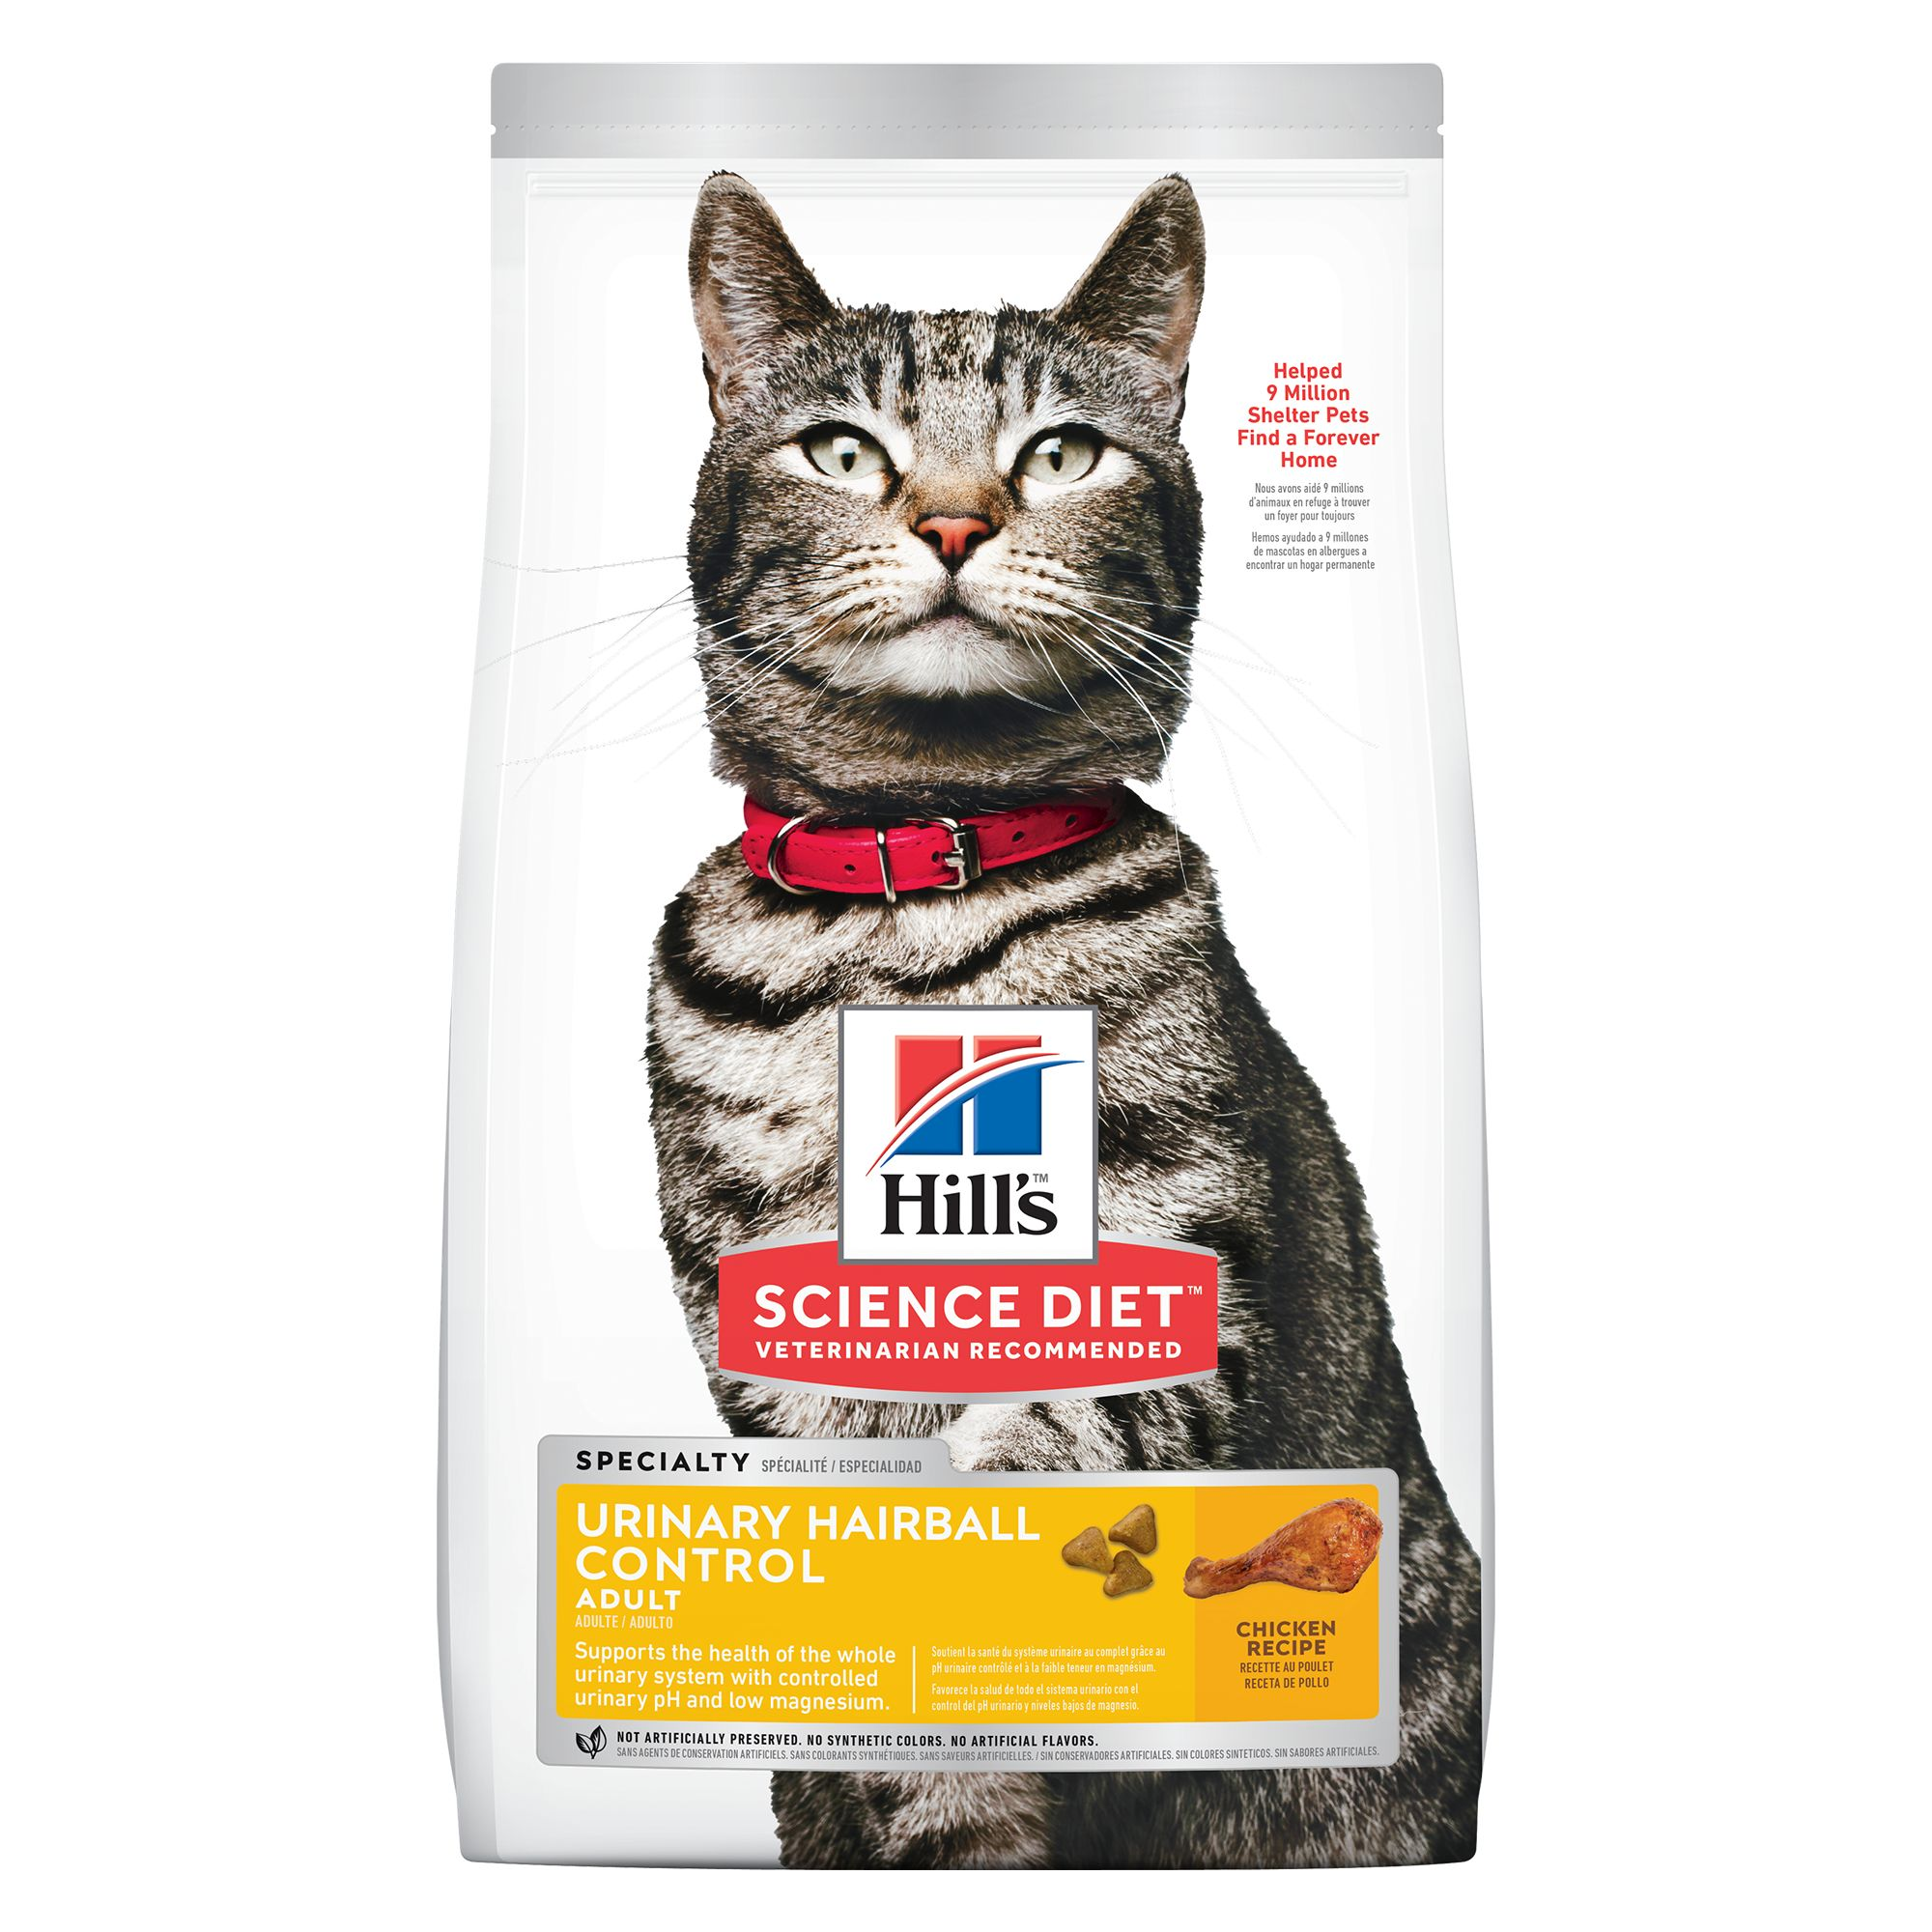 Hill S Science Diet Urinary Hairball Control Adult Cat Food